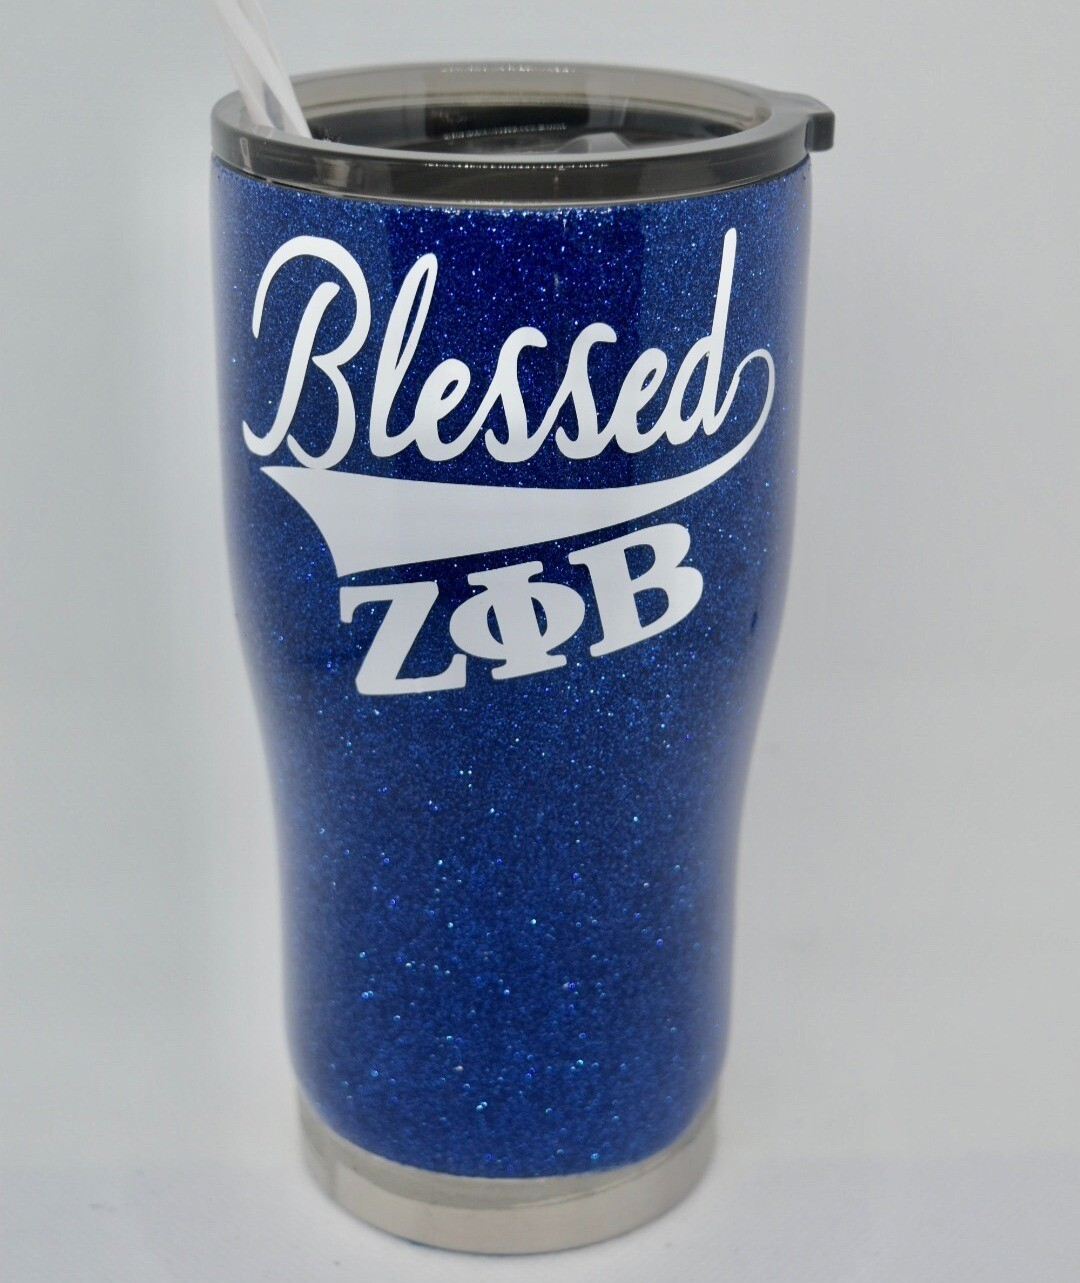 ZPB Blessed